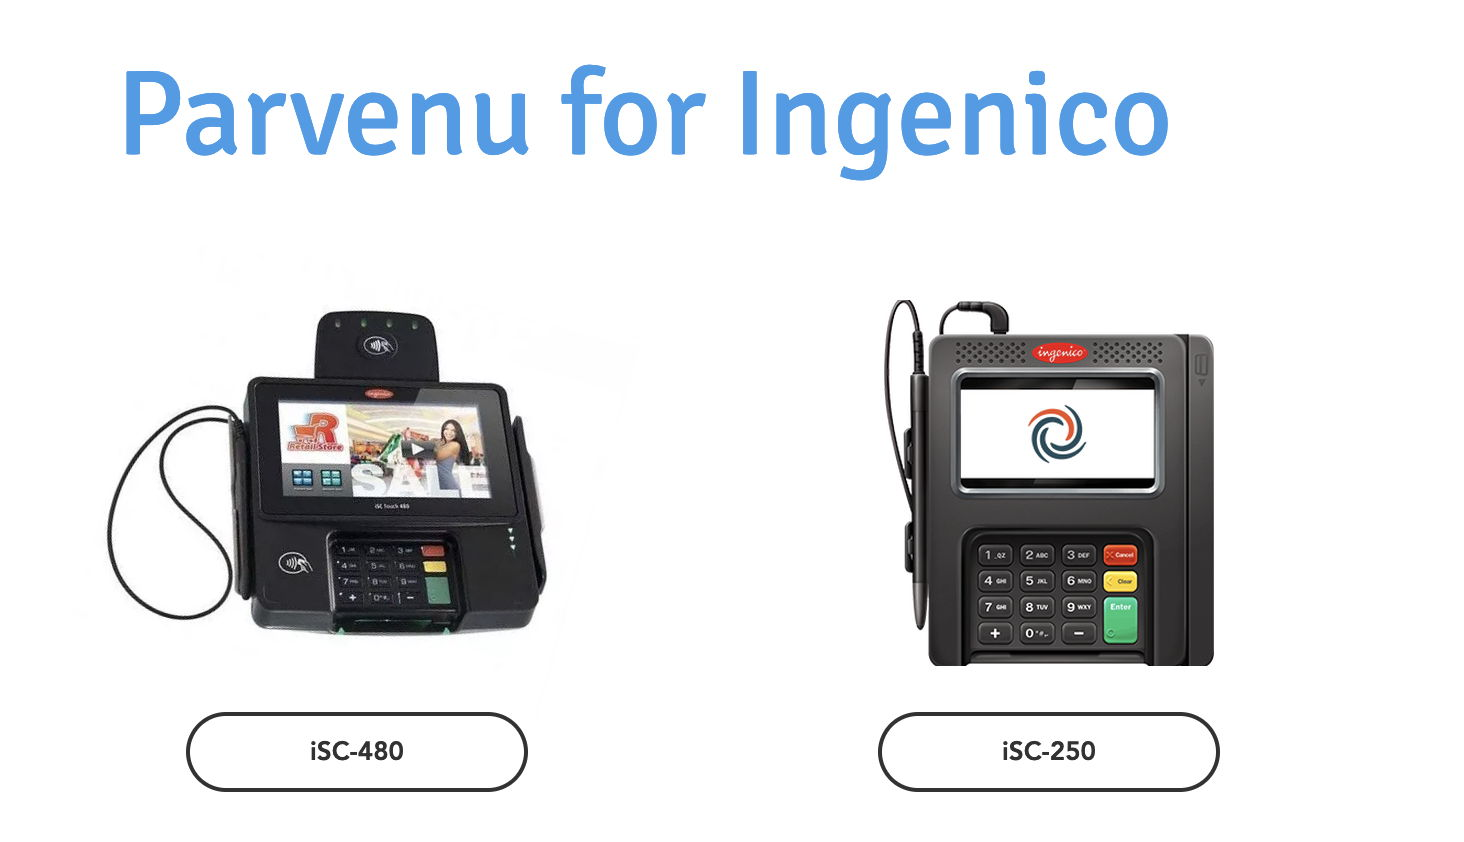 Parvenu | Parvenu's Back-to-Back Launches for Ingenico Devices!